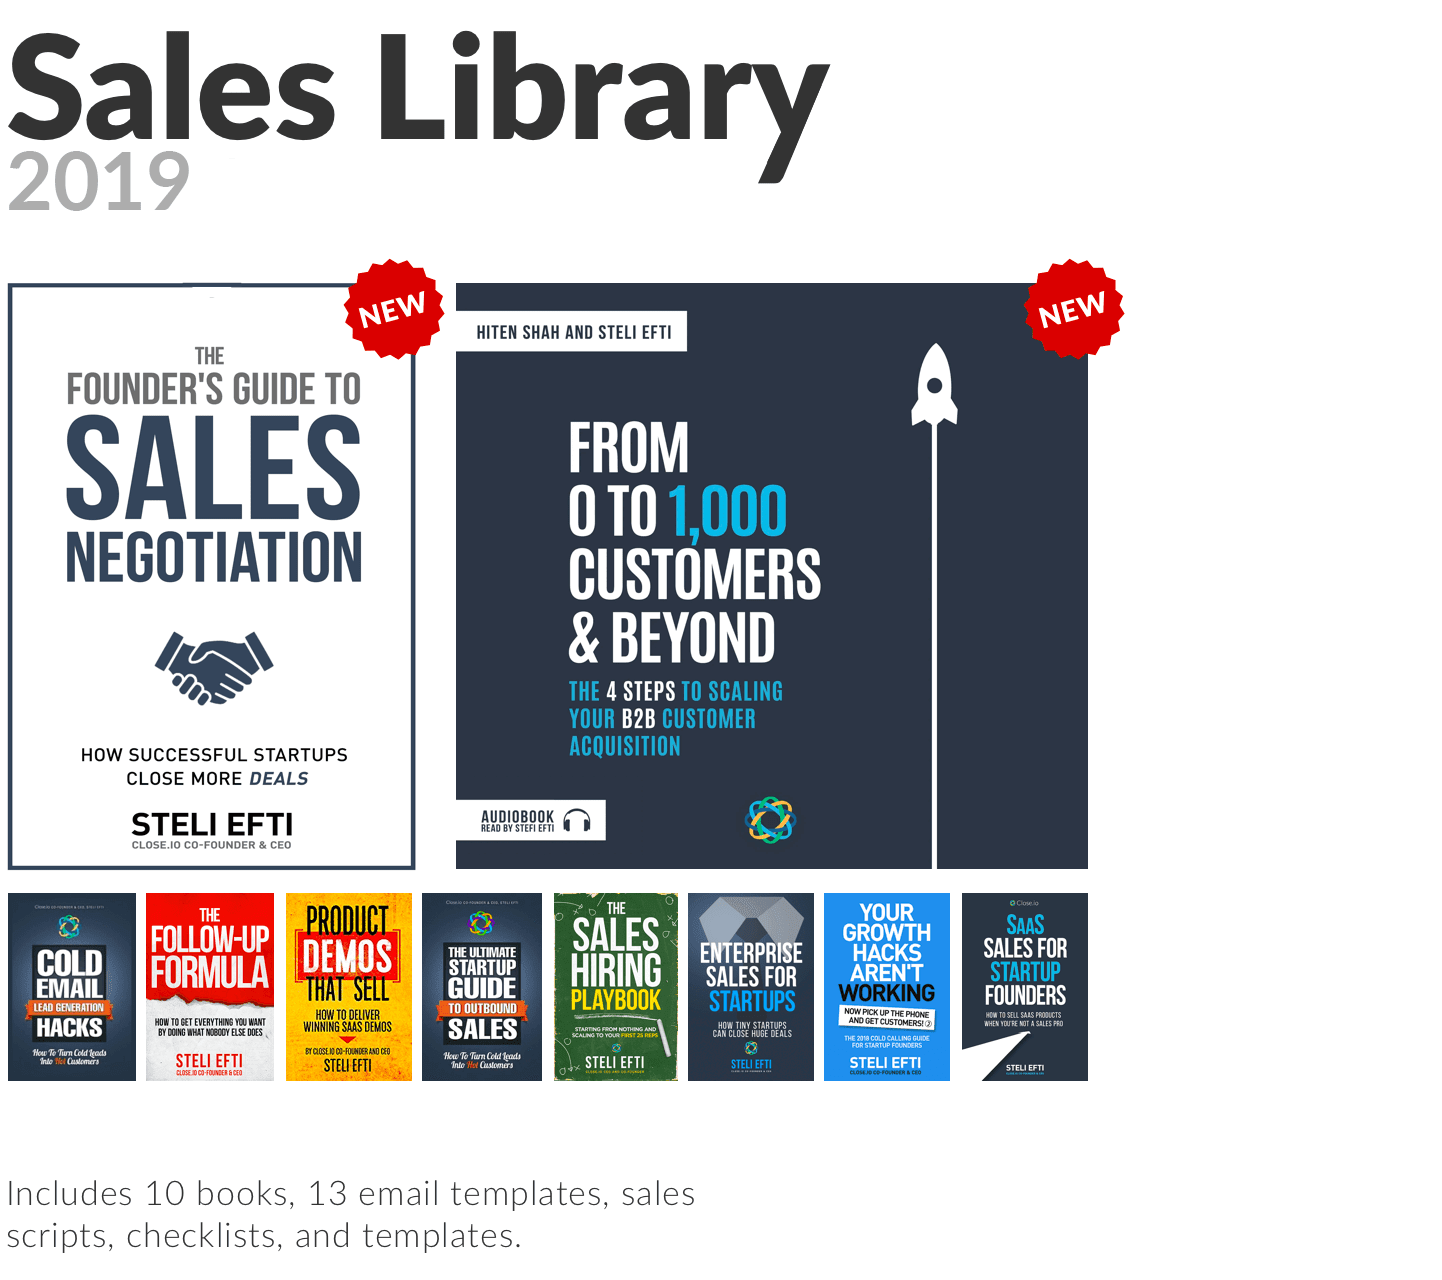 The Sales Library